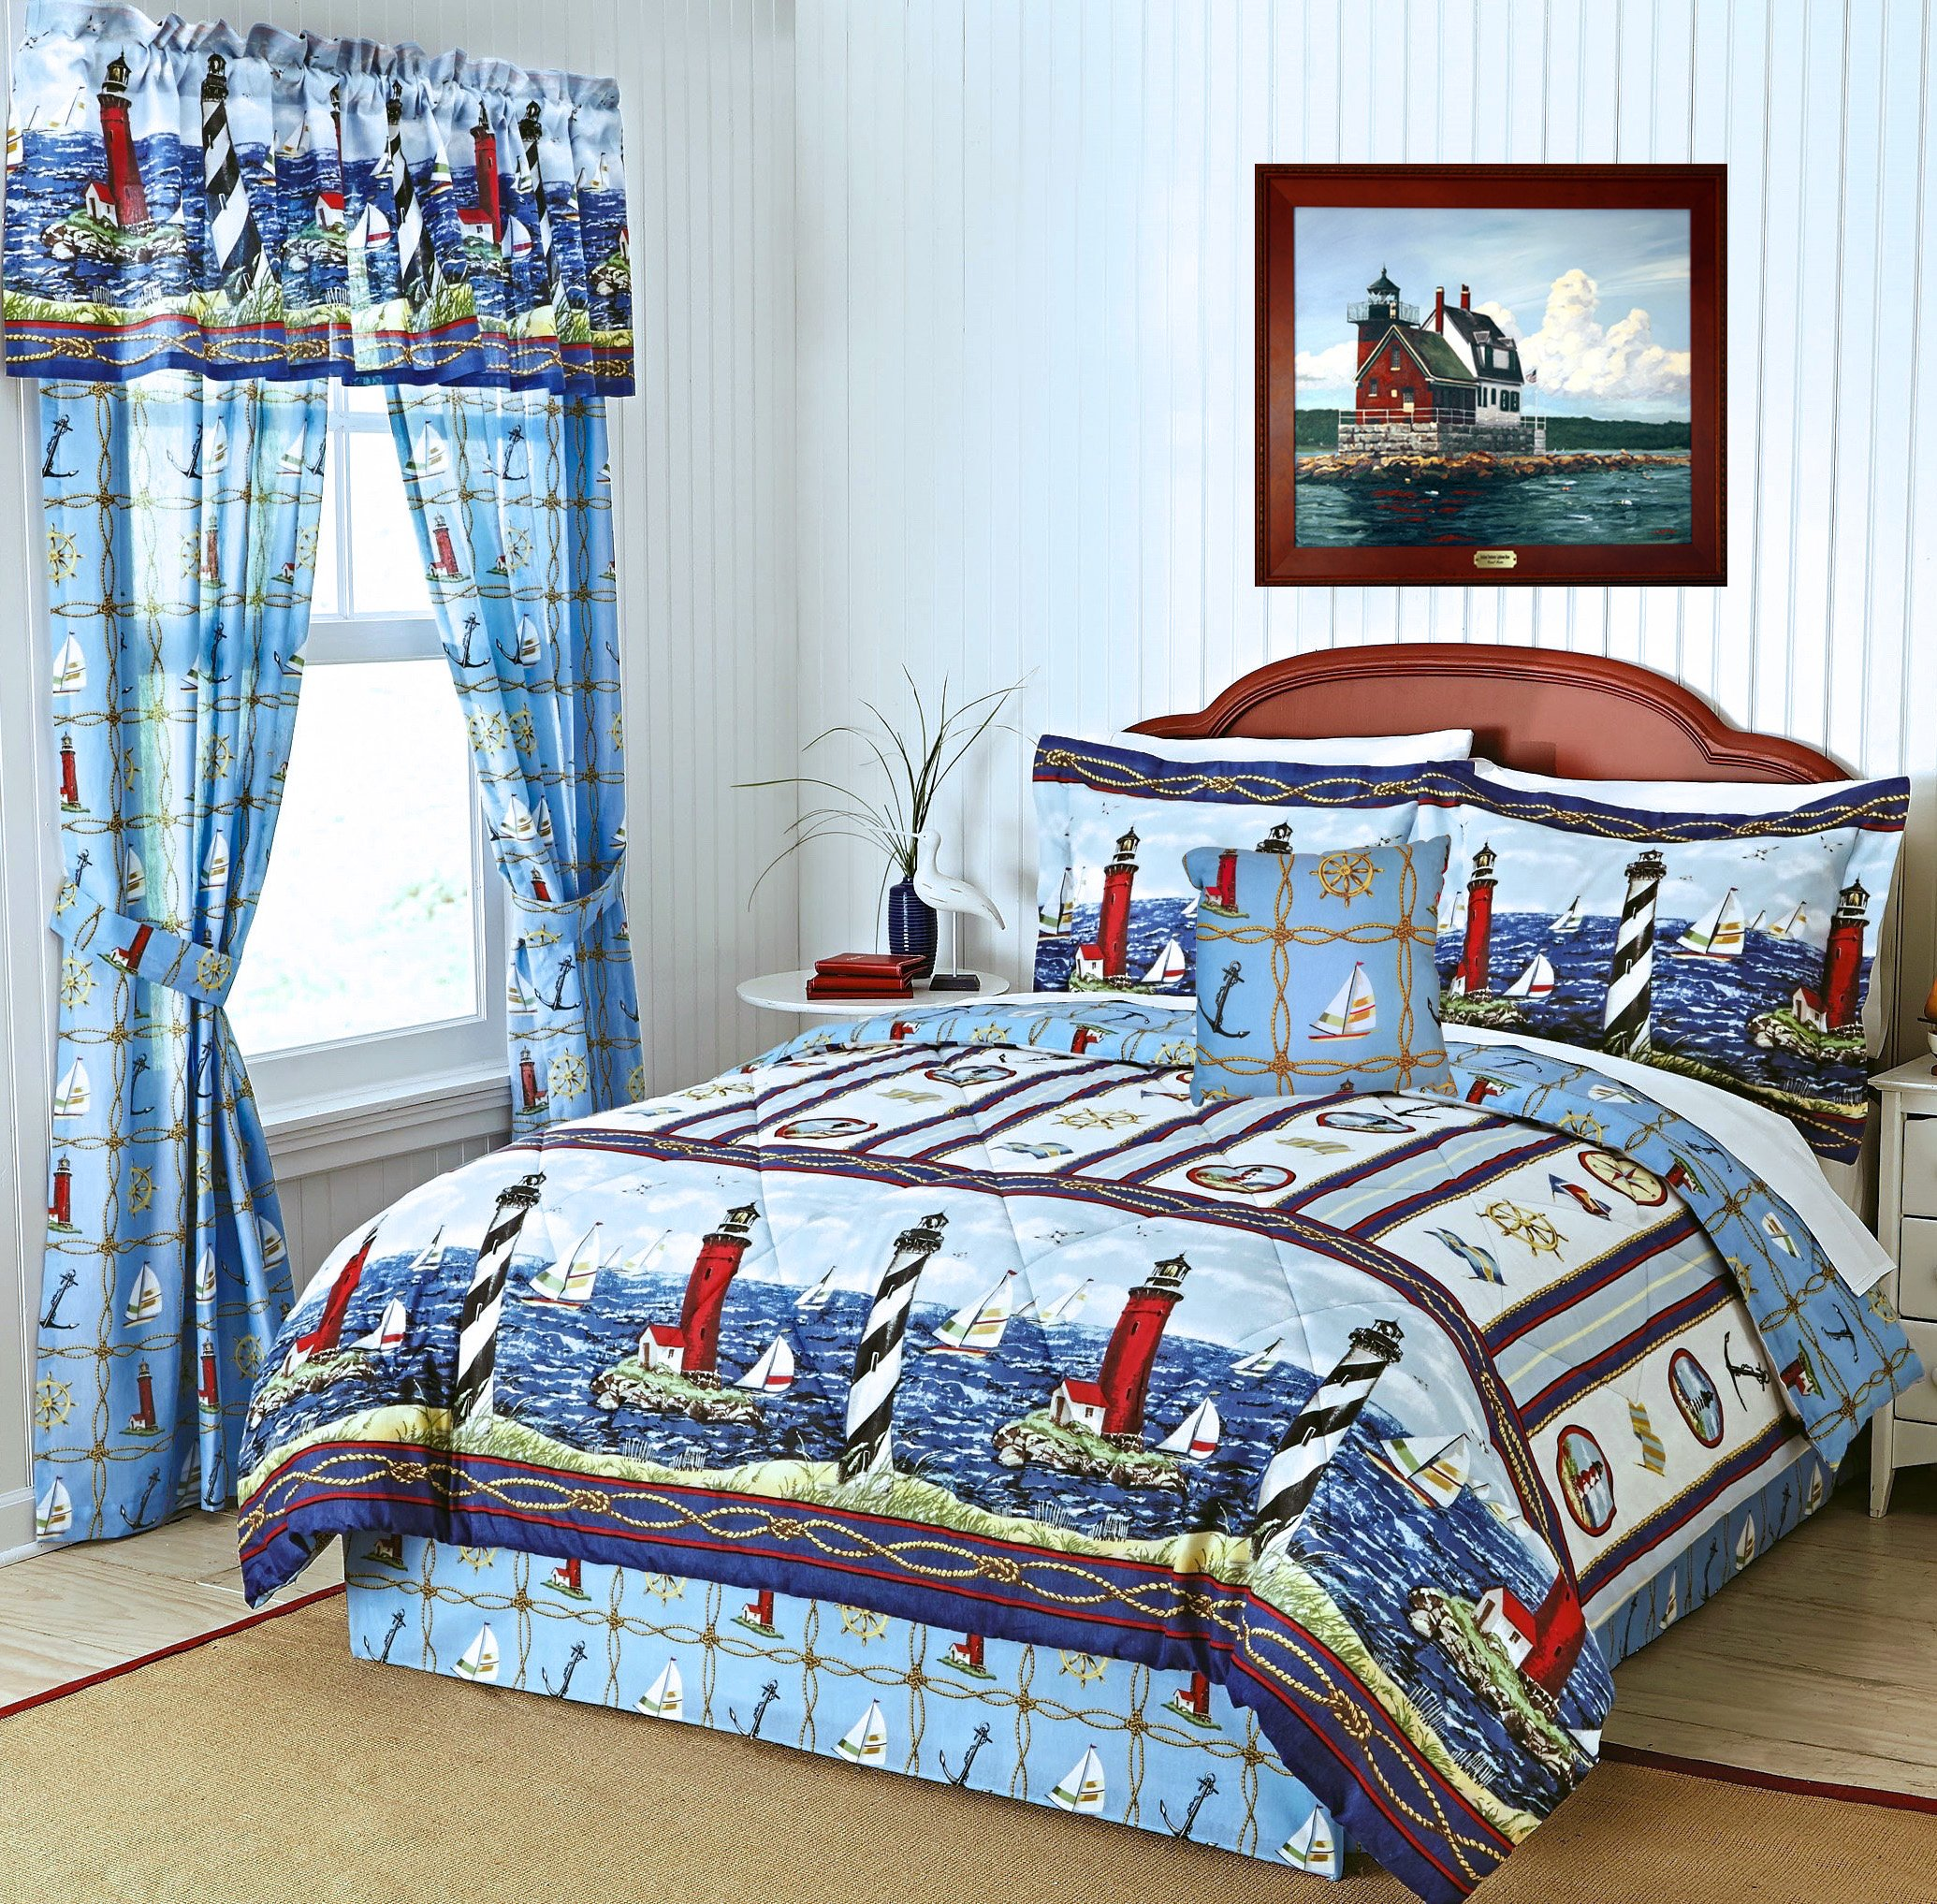 NANTUCKET NAUTICAL LIGHTHOUSE & SAILBOATS Blue & White Comforter Set + PILLOW! (5pc KING SIZE) - (Window Treatments NOT INCLUDED)